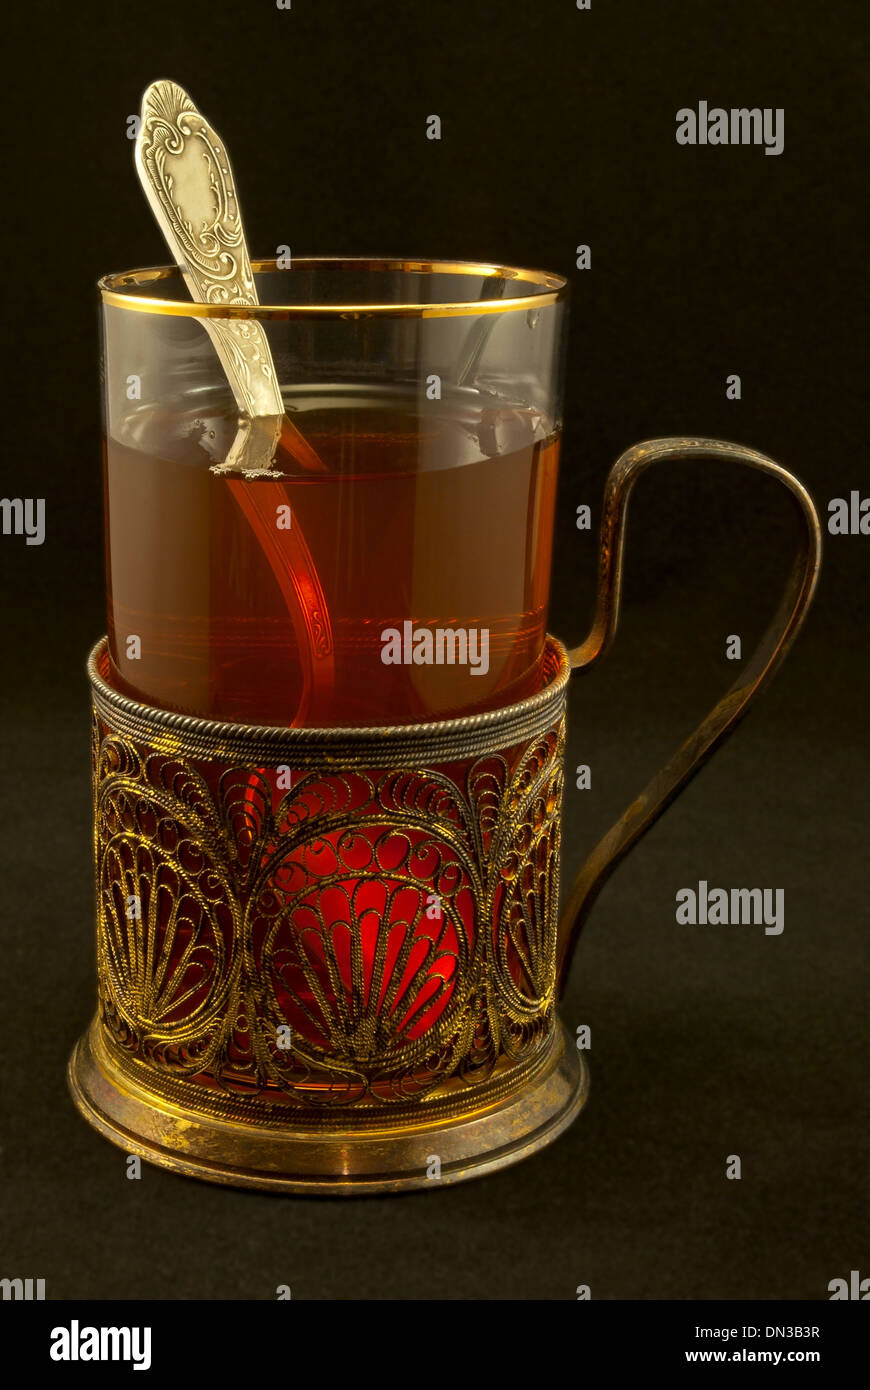 Glass with glass-holder, tea and a silver spoon on a black background. - Stock Image